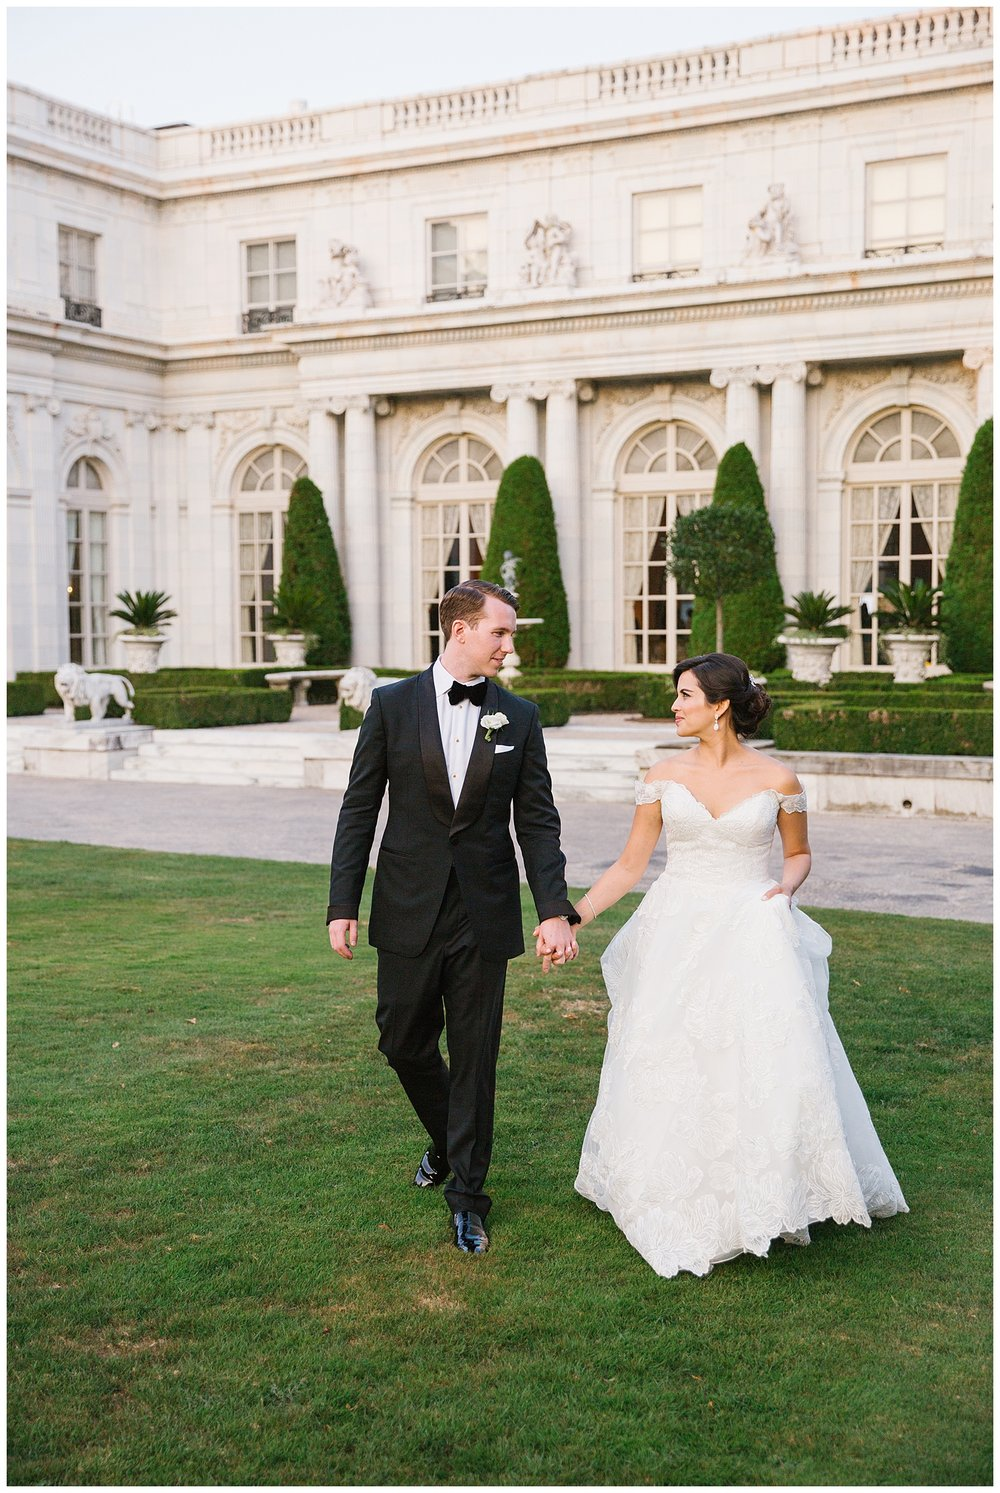 Stephen_Nathalie_Rosecliff_Mansion_Wedding_025.jpeg